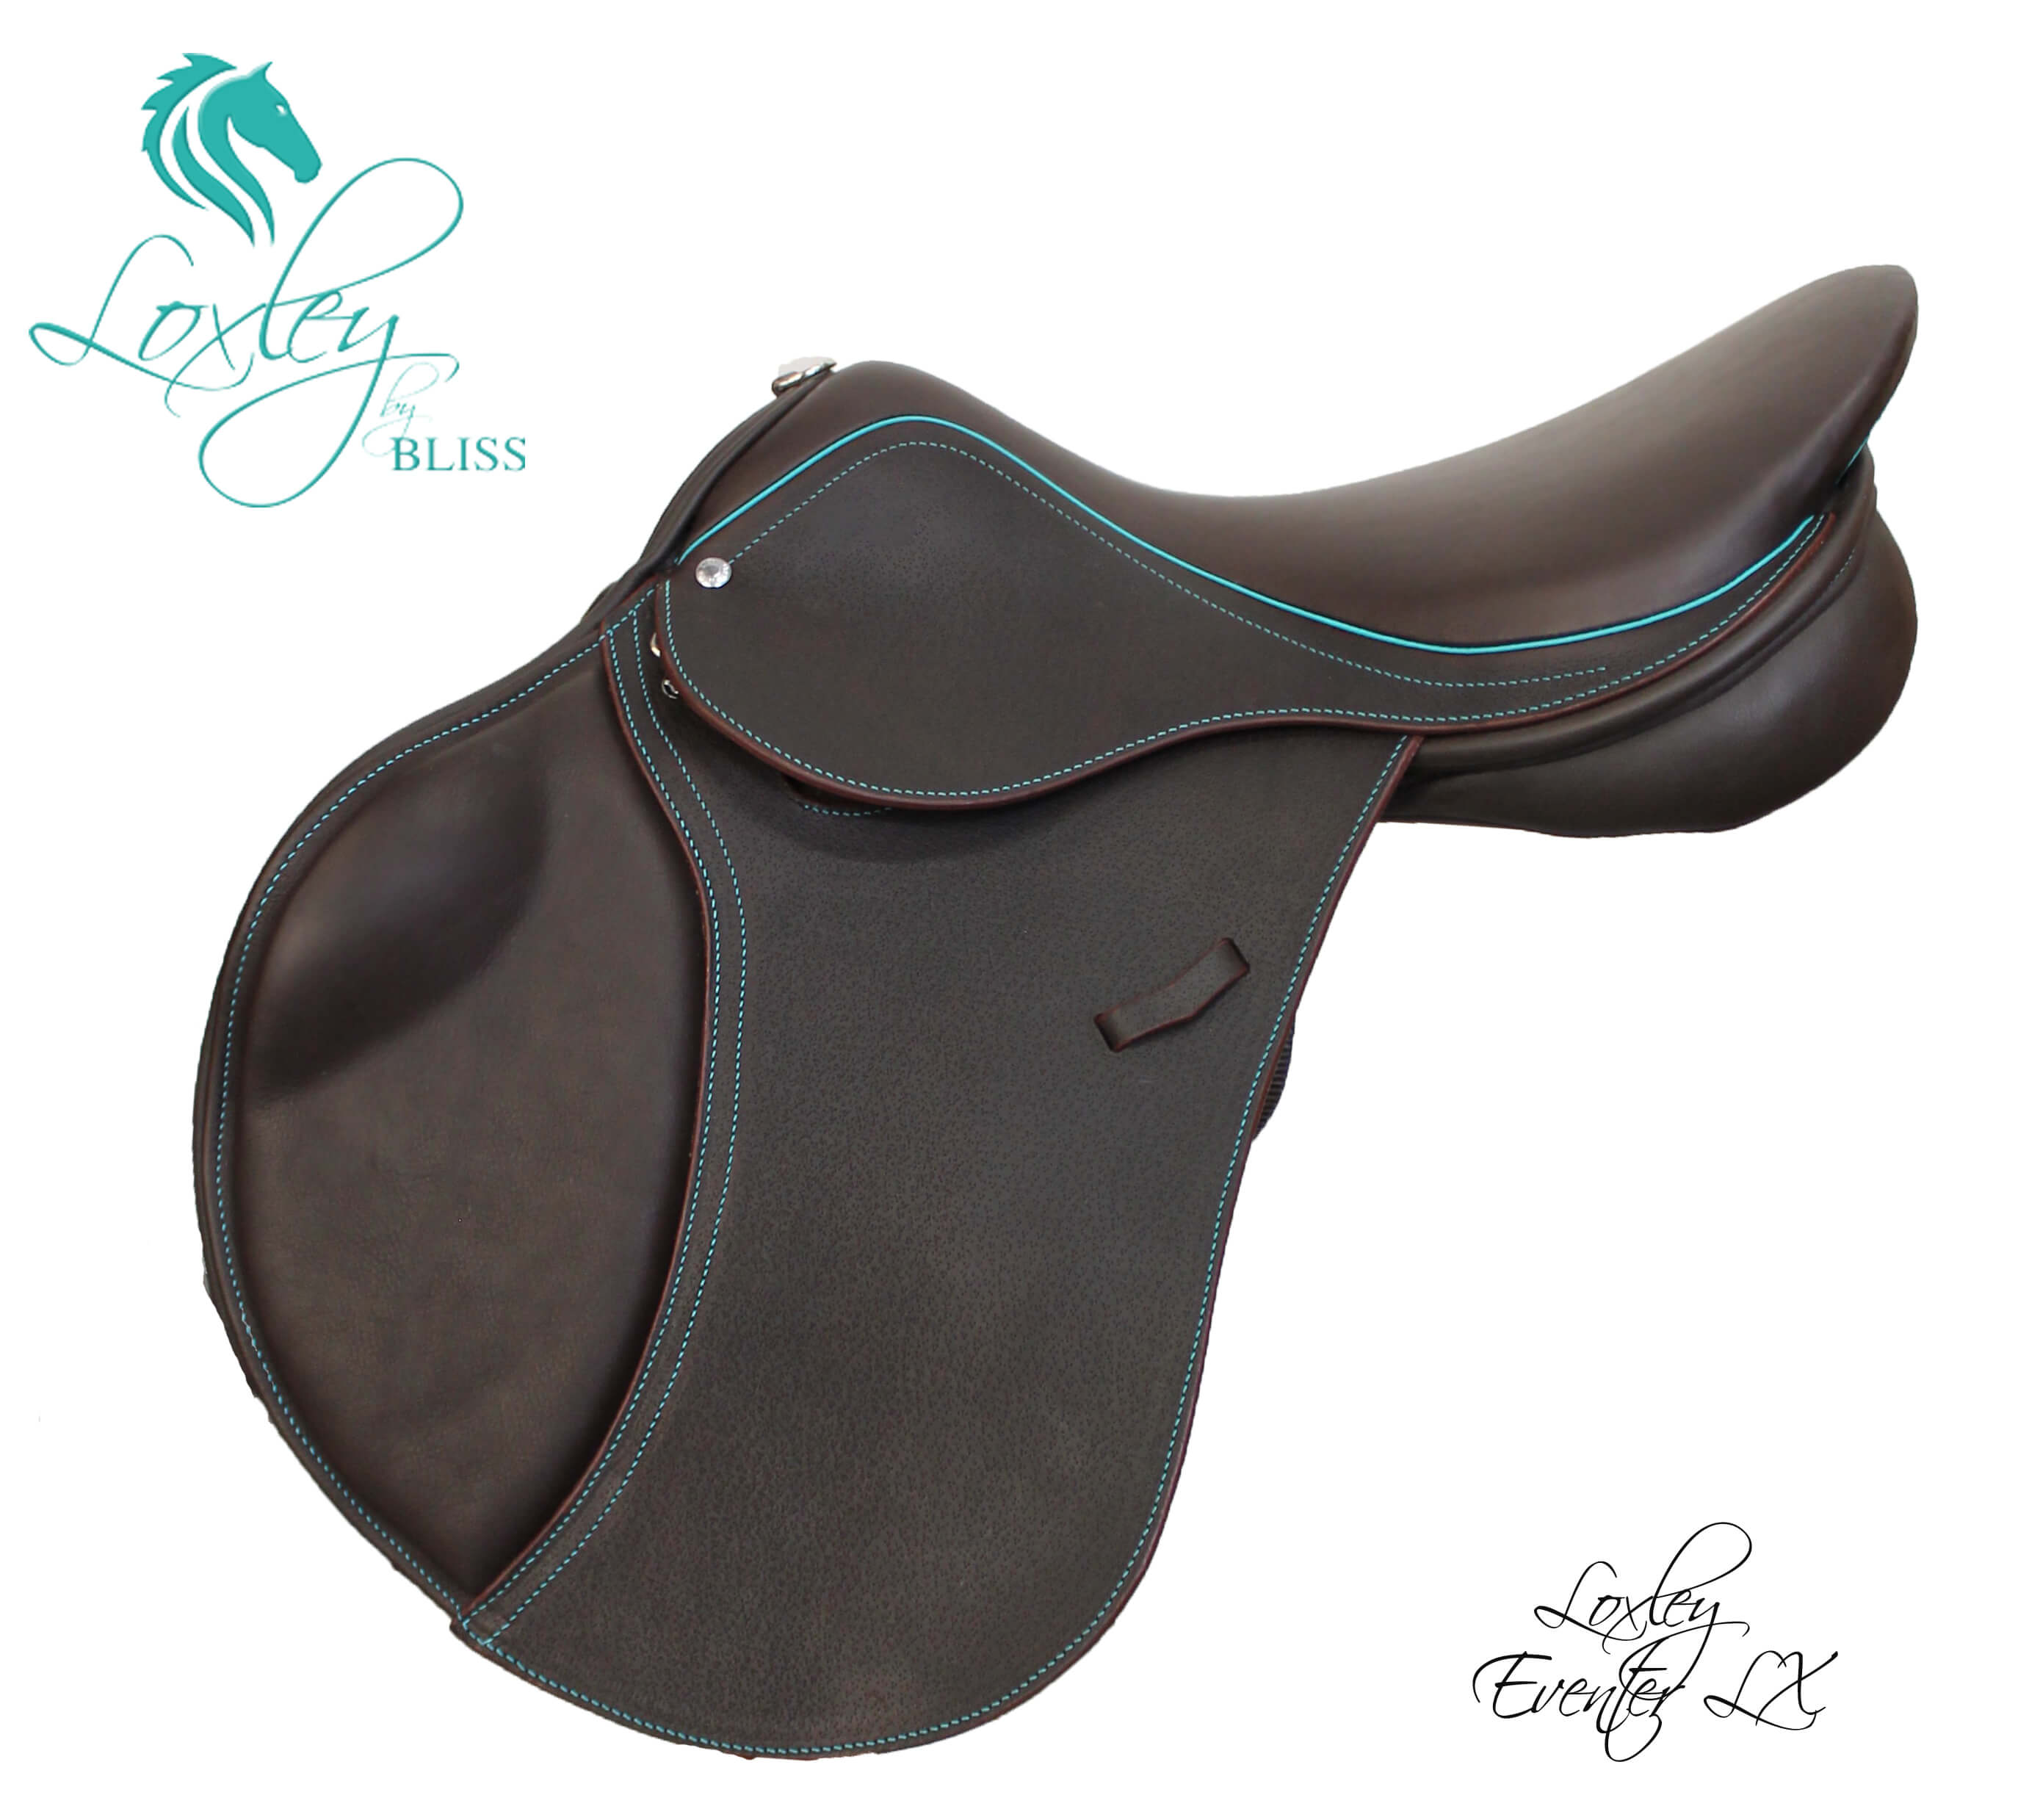 2 Cocoa & Teal eventer LX side Loxley Saddle Image Template